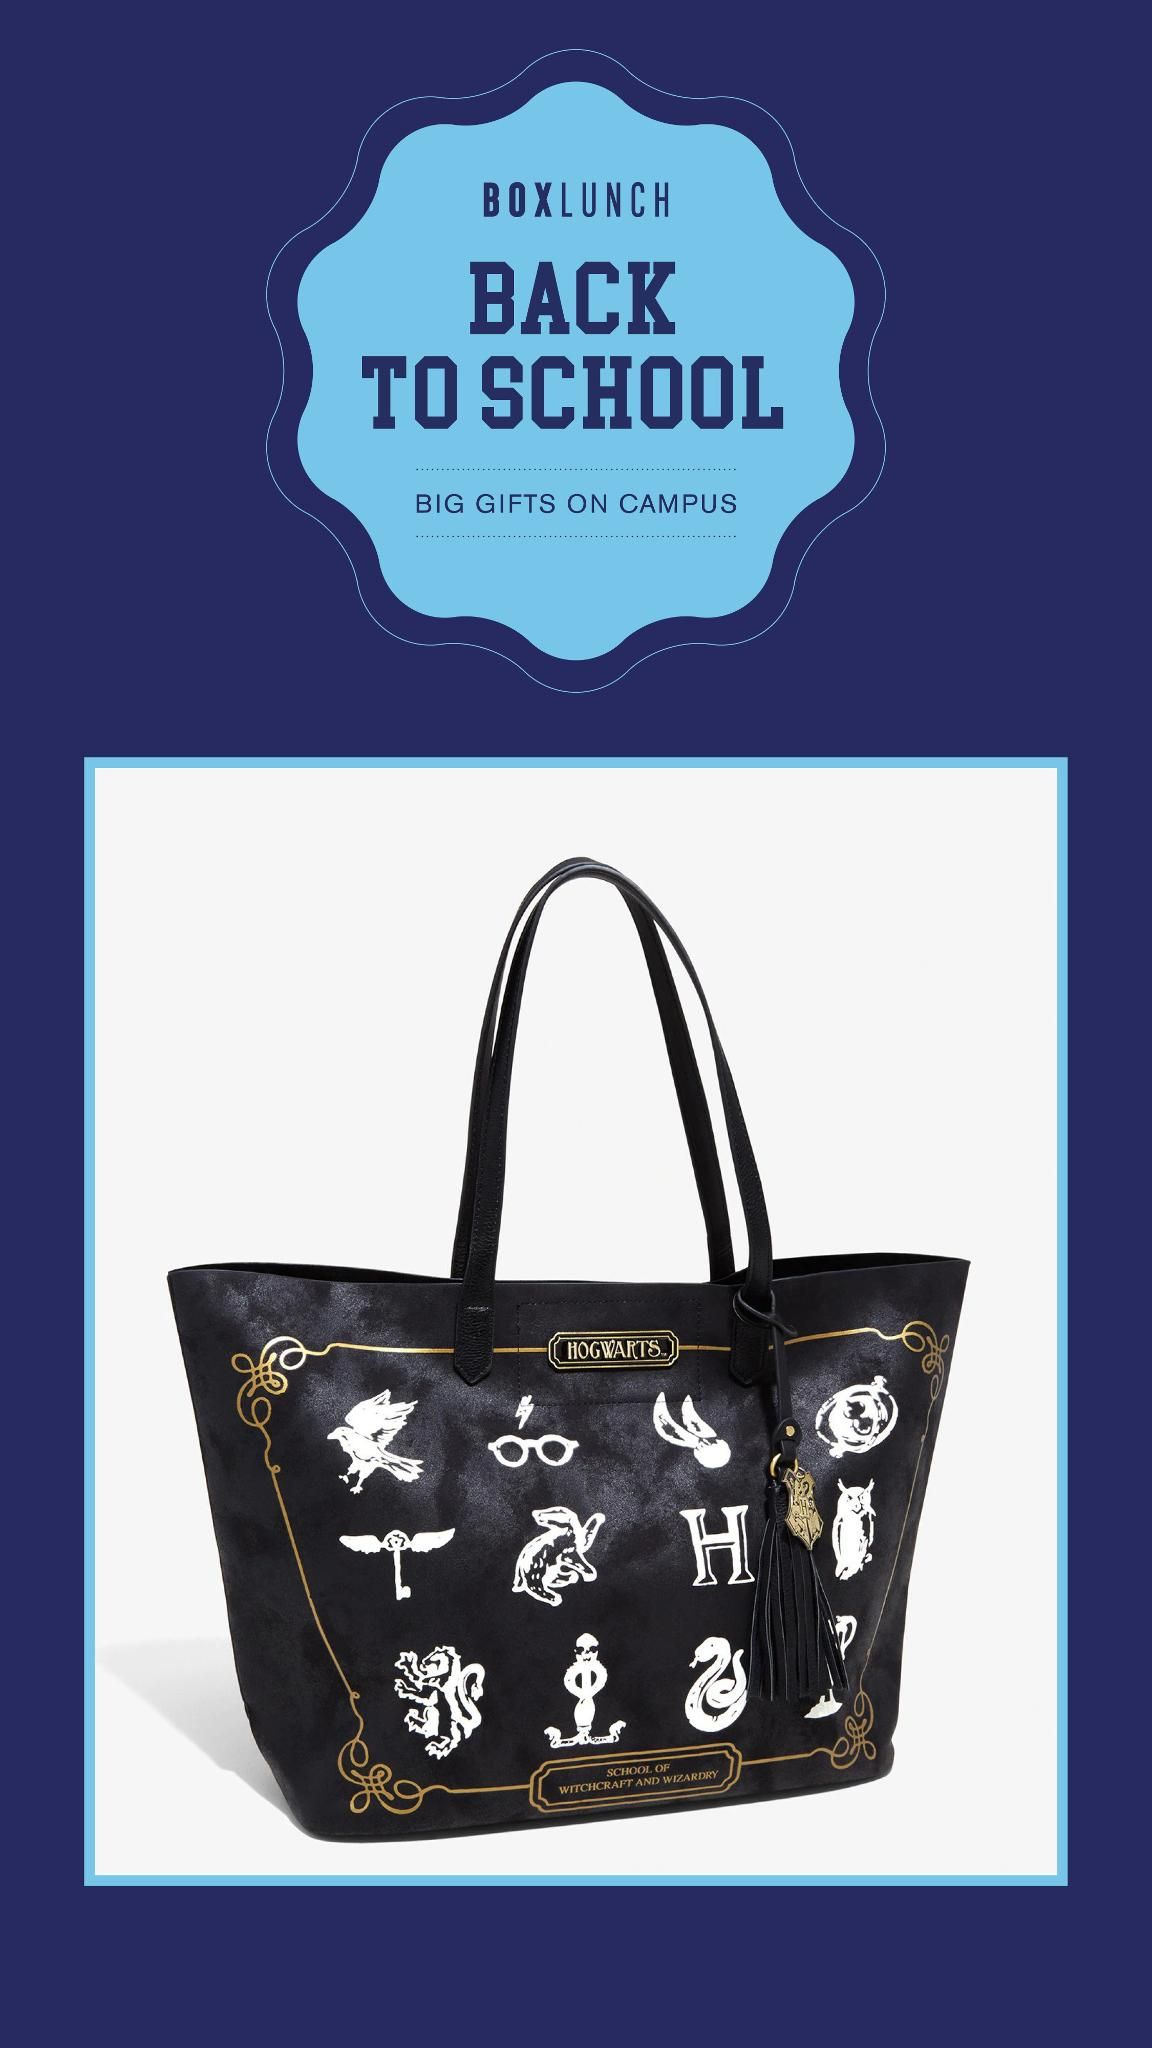 Damentaschen Harry Potter Back To Hogwarts Icons Faux Leather Tote Hand Bag  Purse Kleidung & Accessoires bailek.com